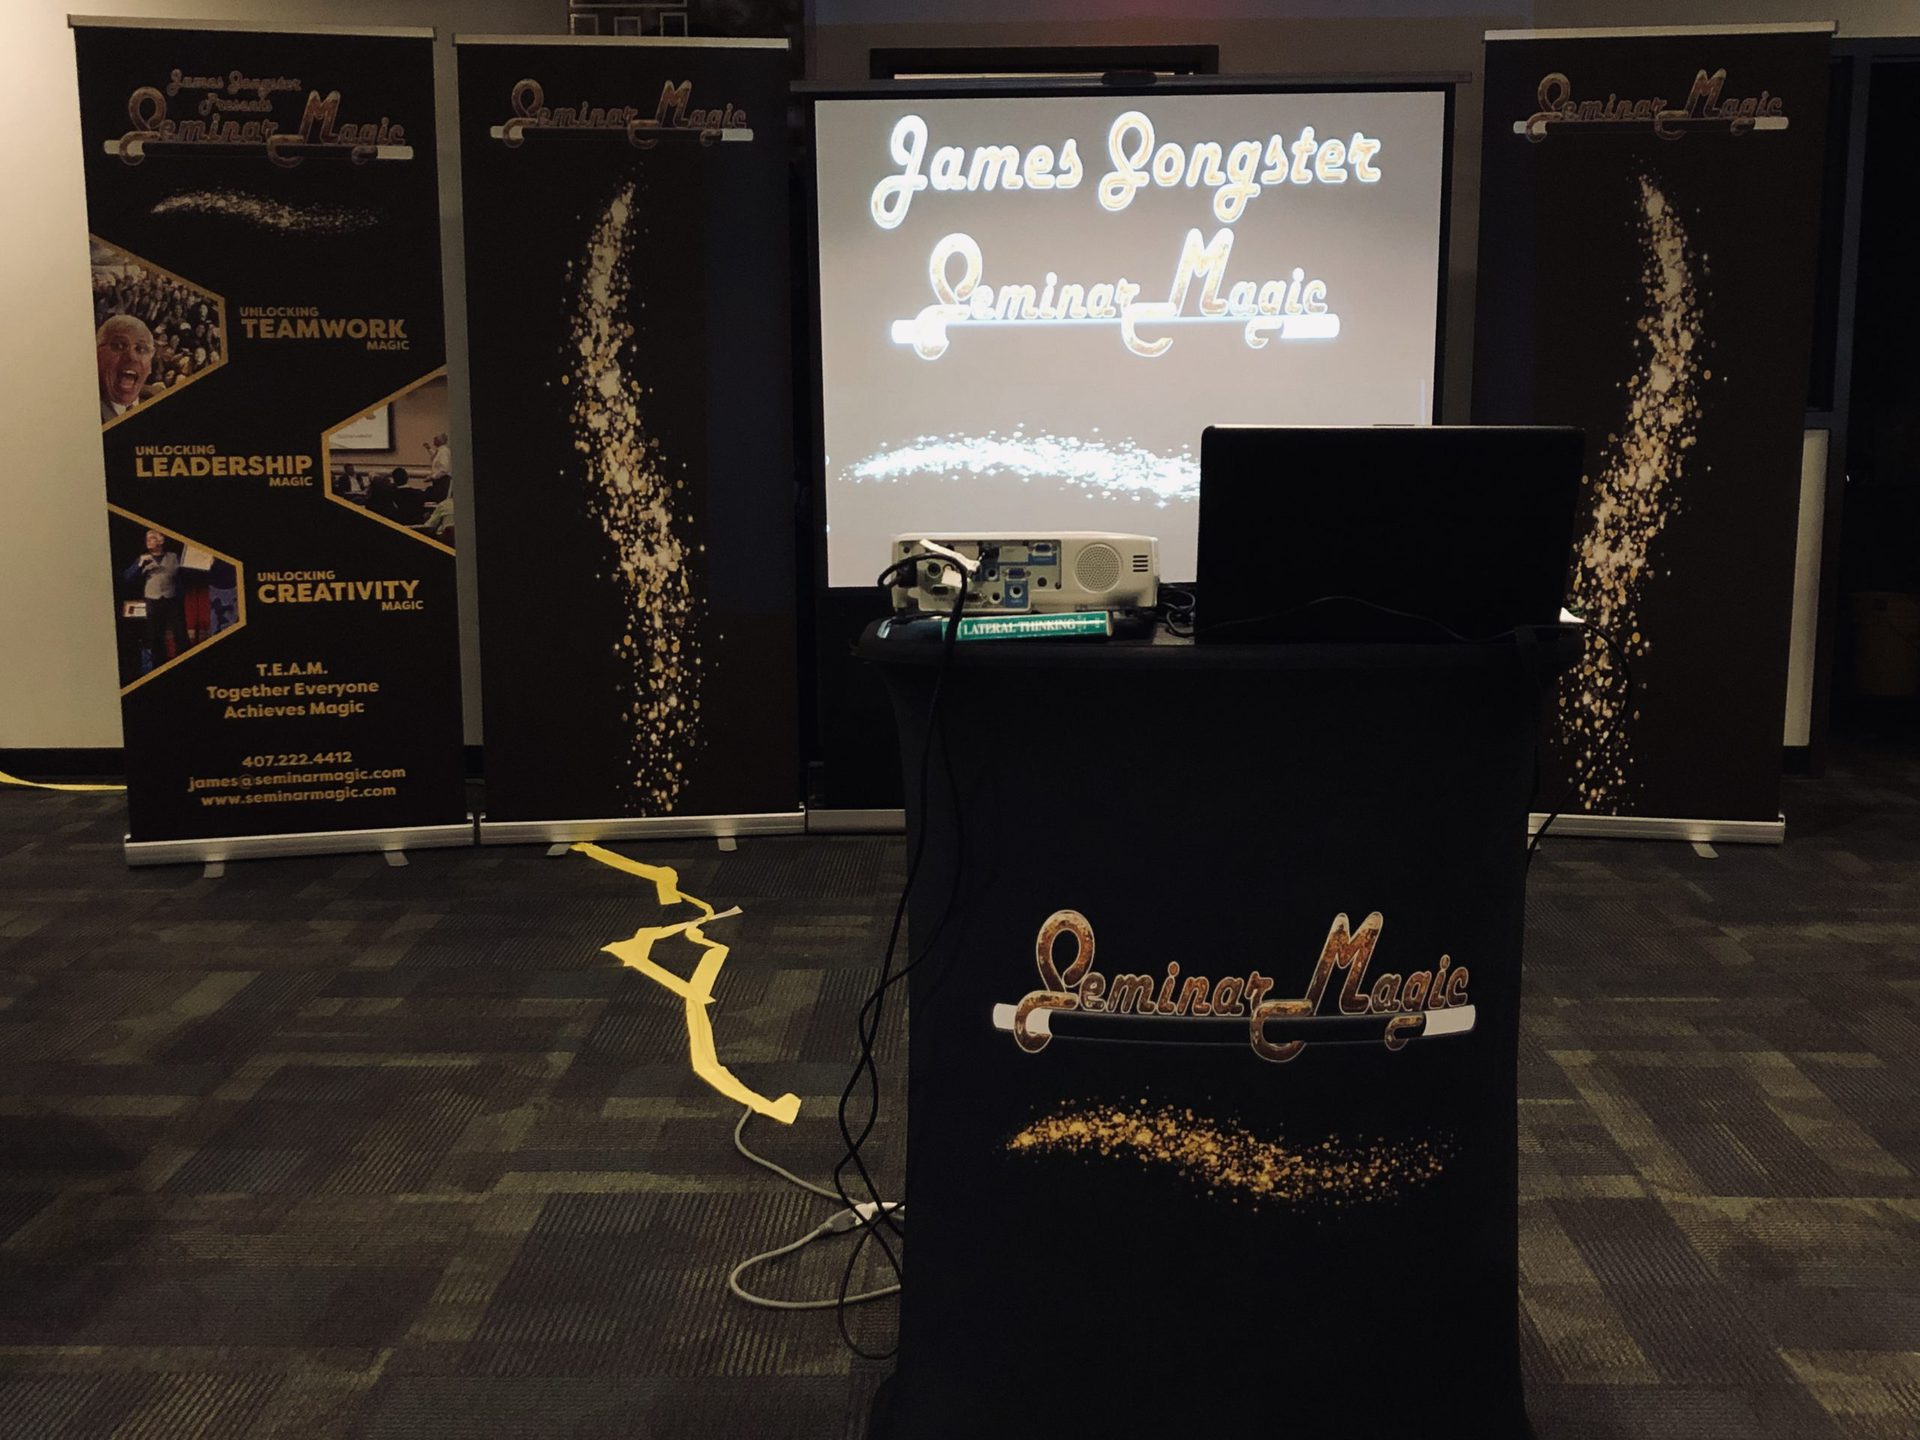 James Songster presents Seminar Magic in a Powerpoint